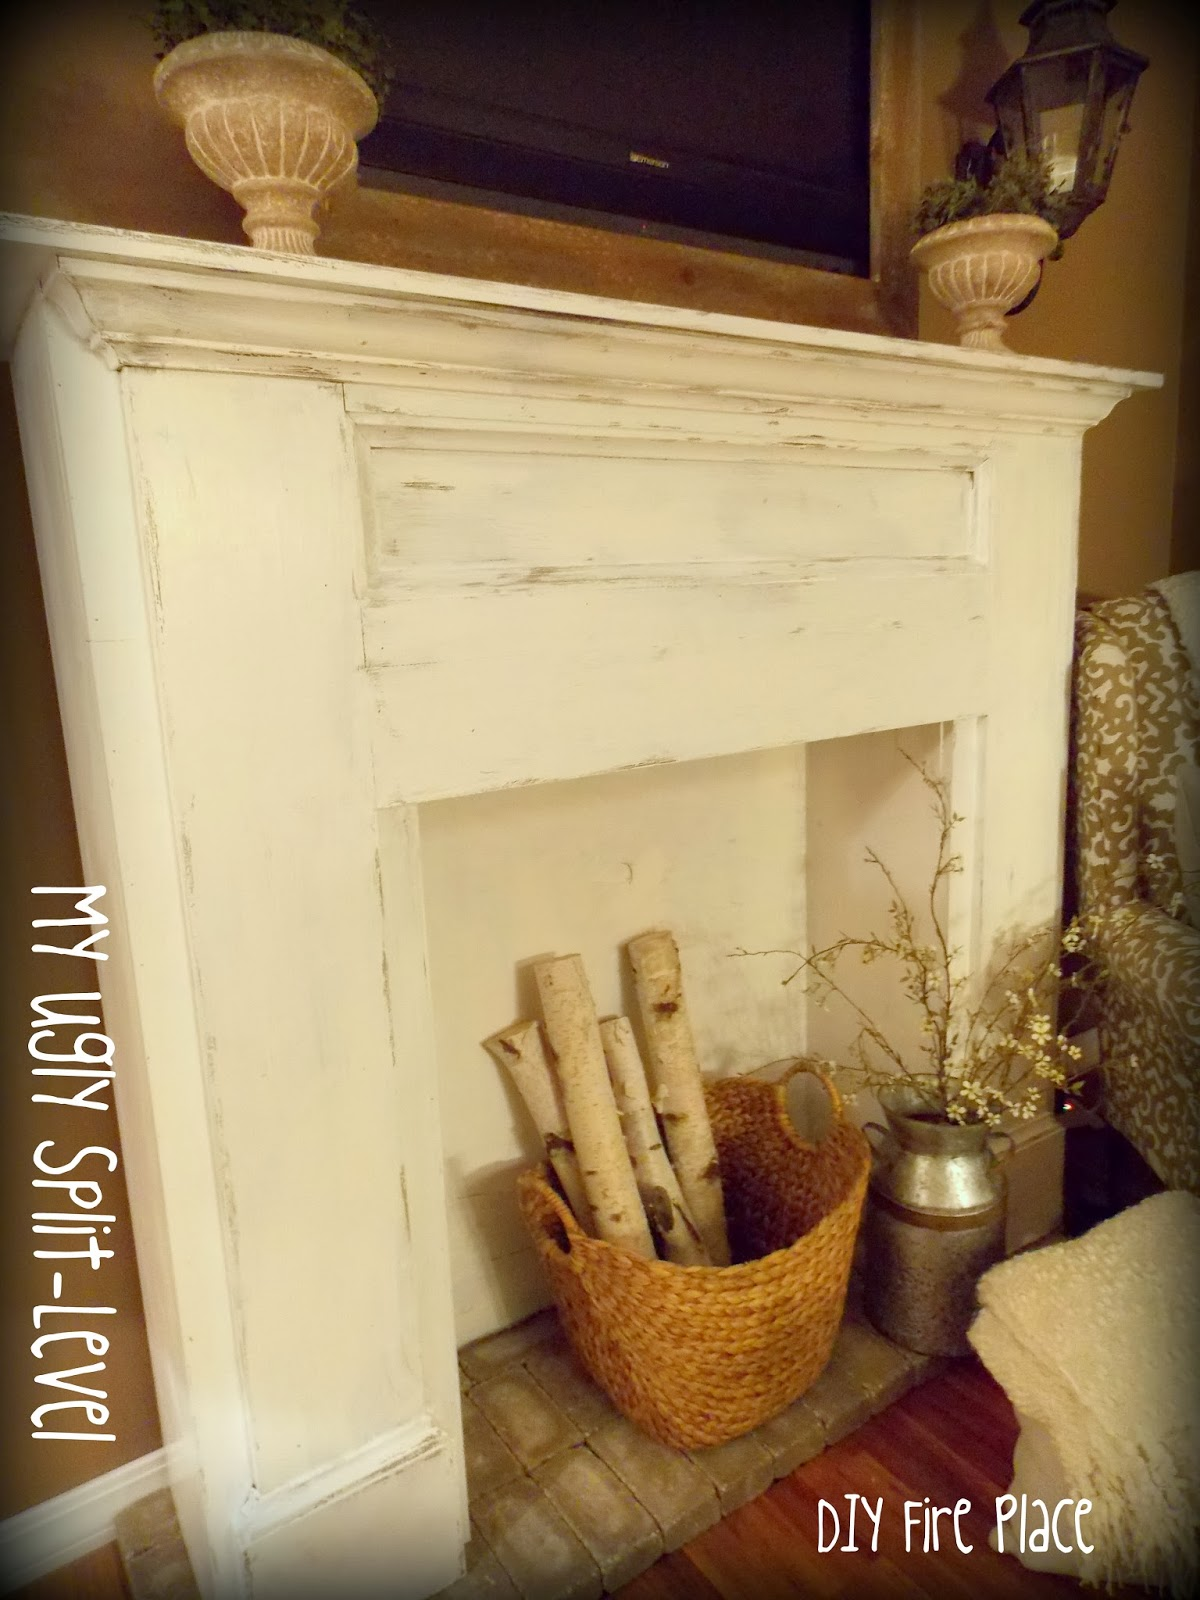 My Ugly Split Level Entryway: My Ugly Split-level: Living Room Update DIY Fireplace